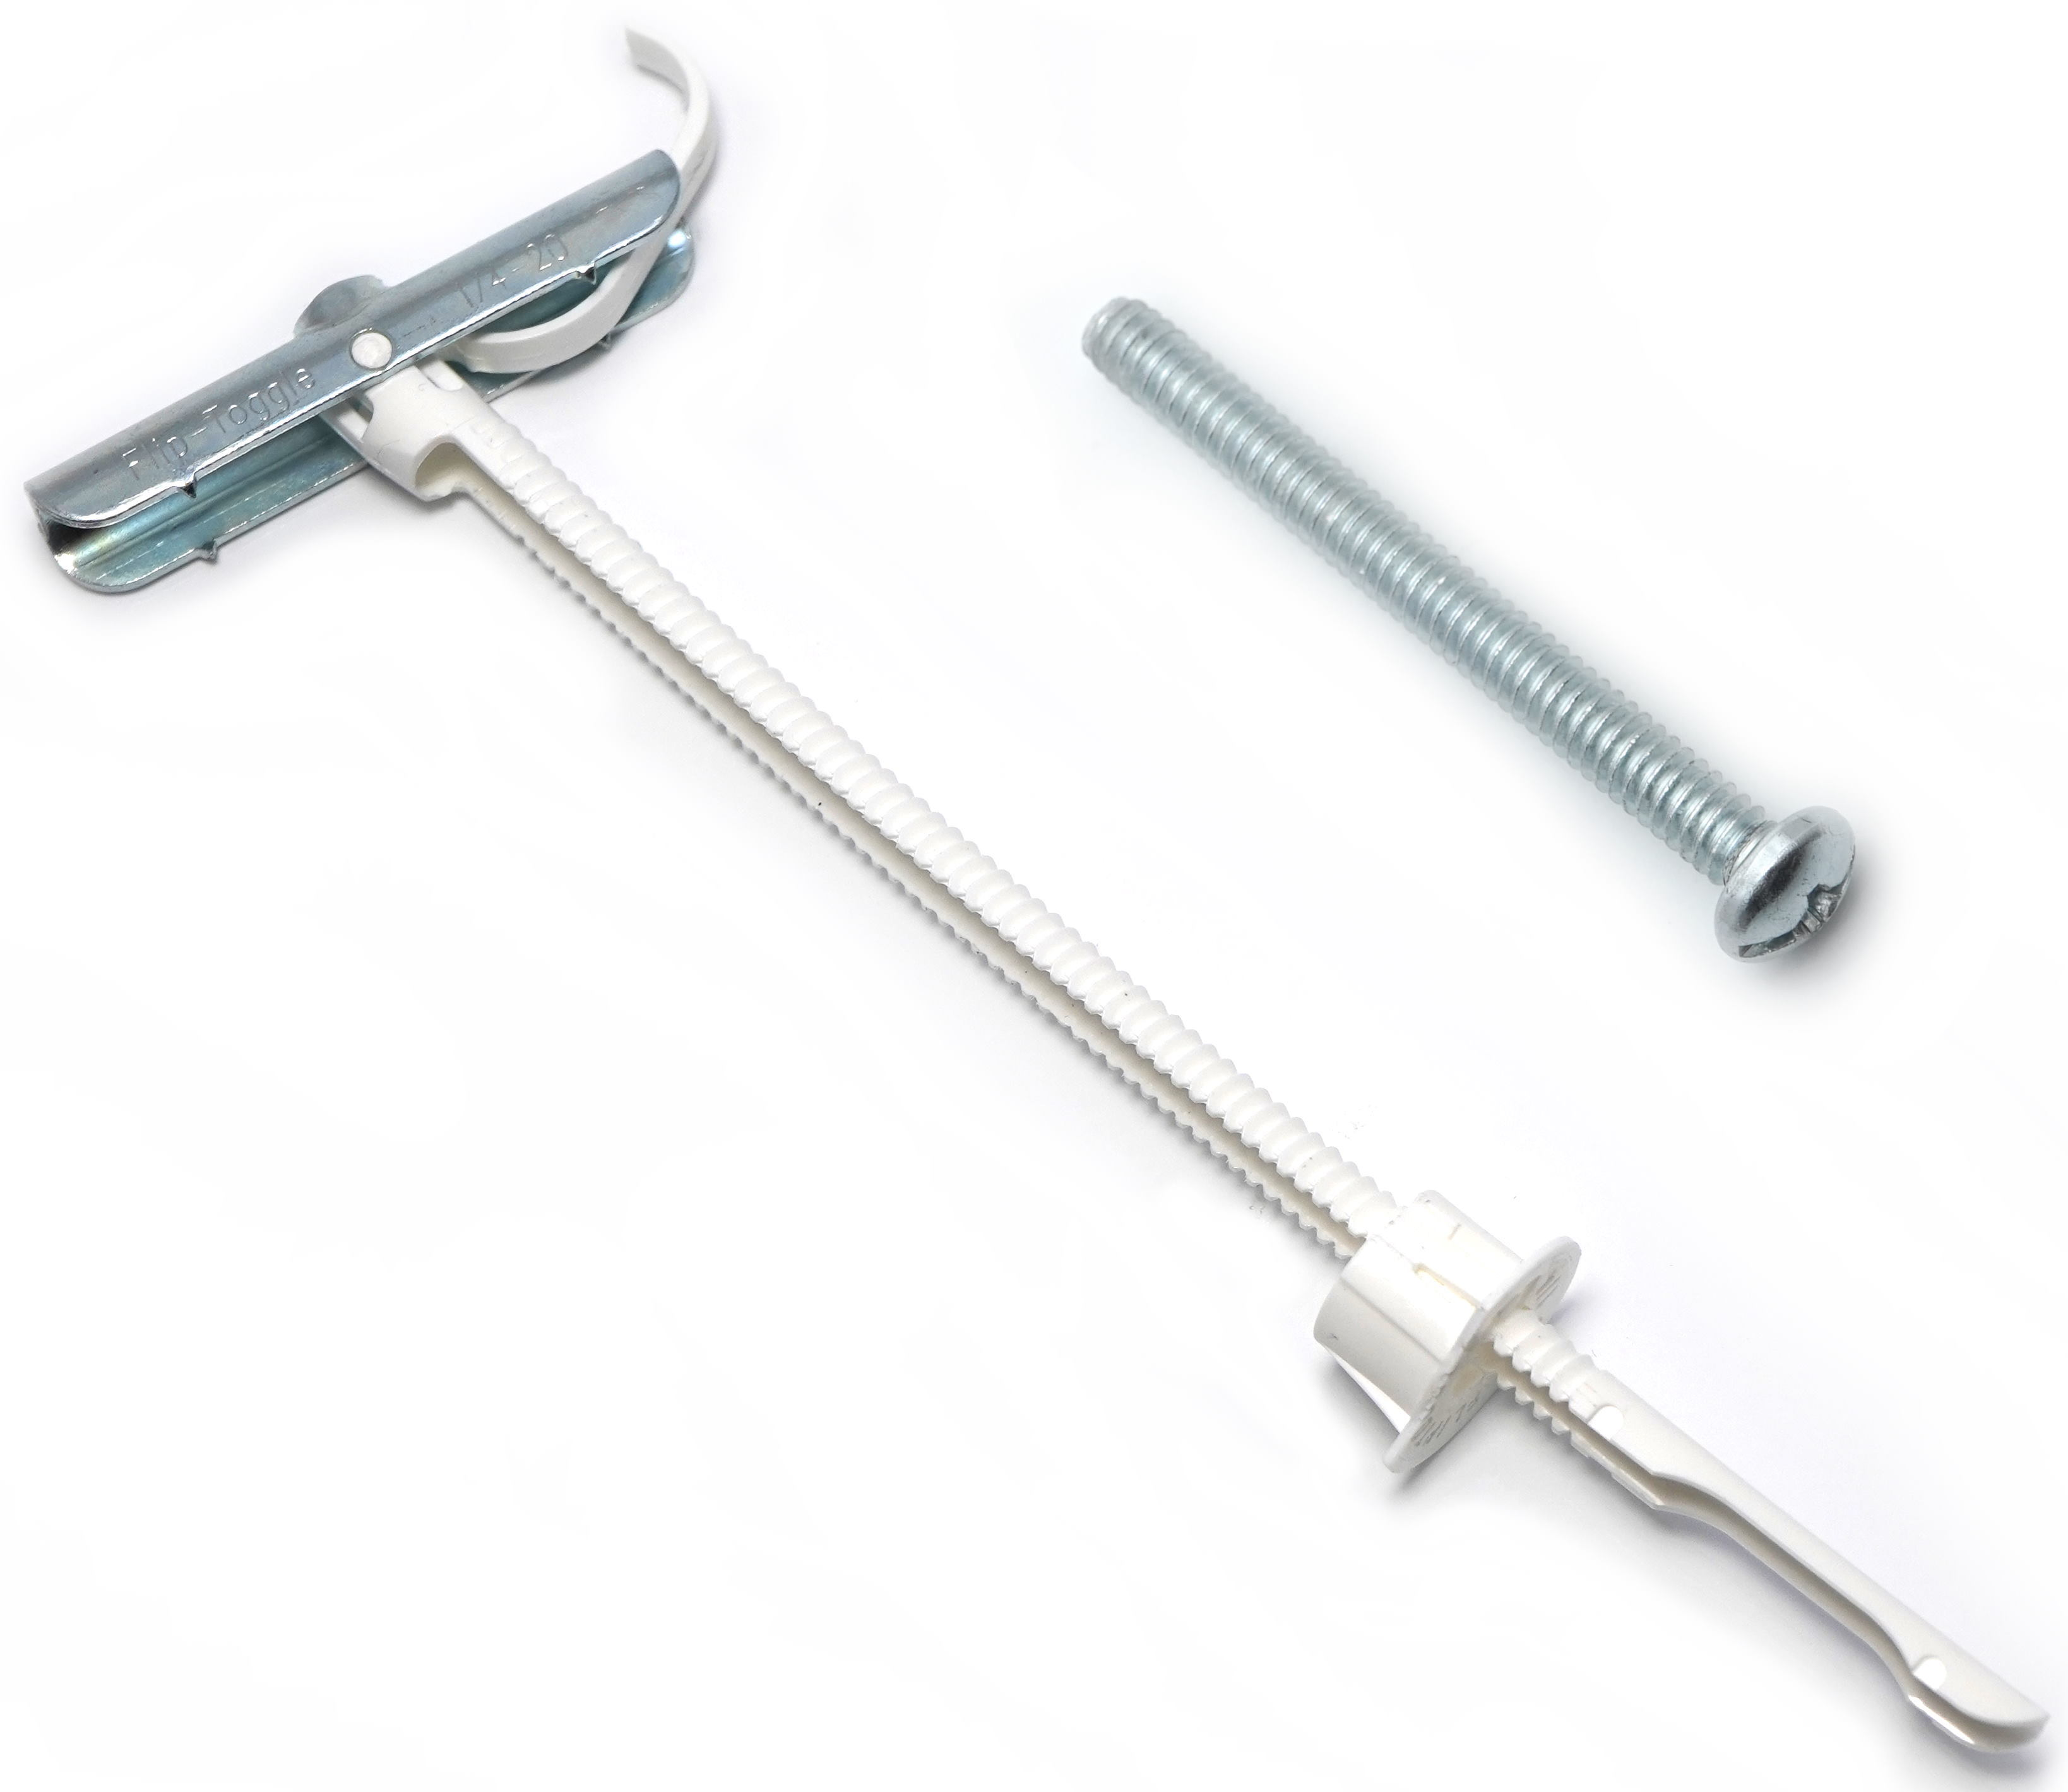 100 Count Simpson Strong-Tie FT25250C25 1//4-20 FlipToggle Anchor with 2-1//2 Bolt 4 Packs // 25 Each